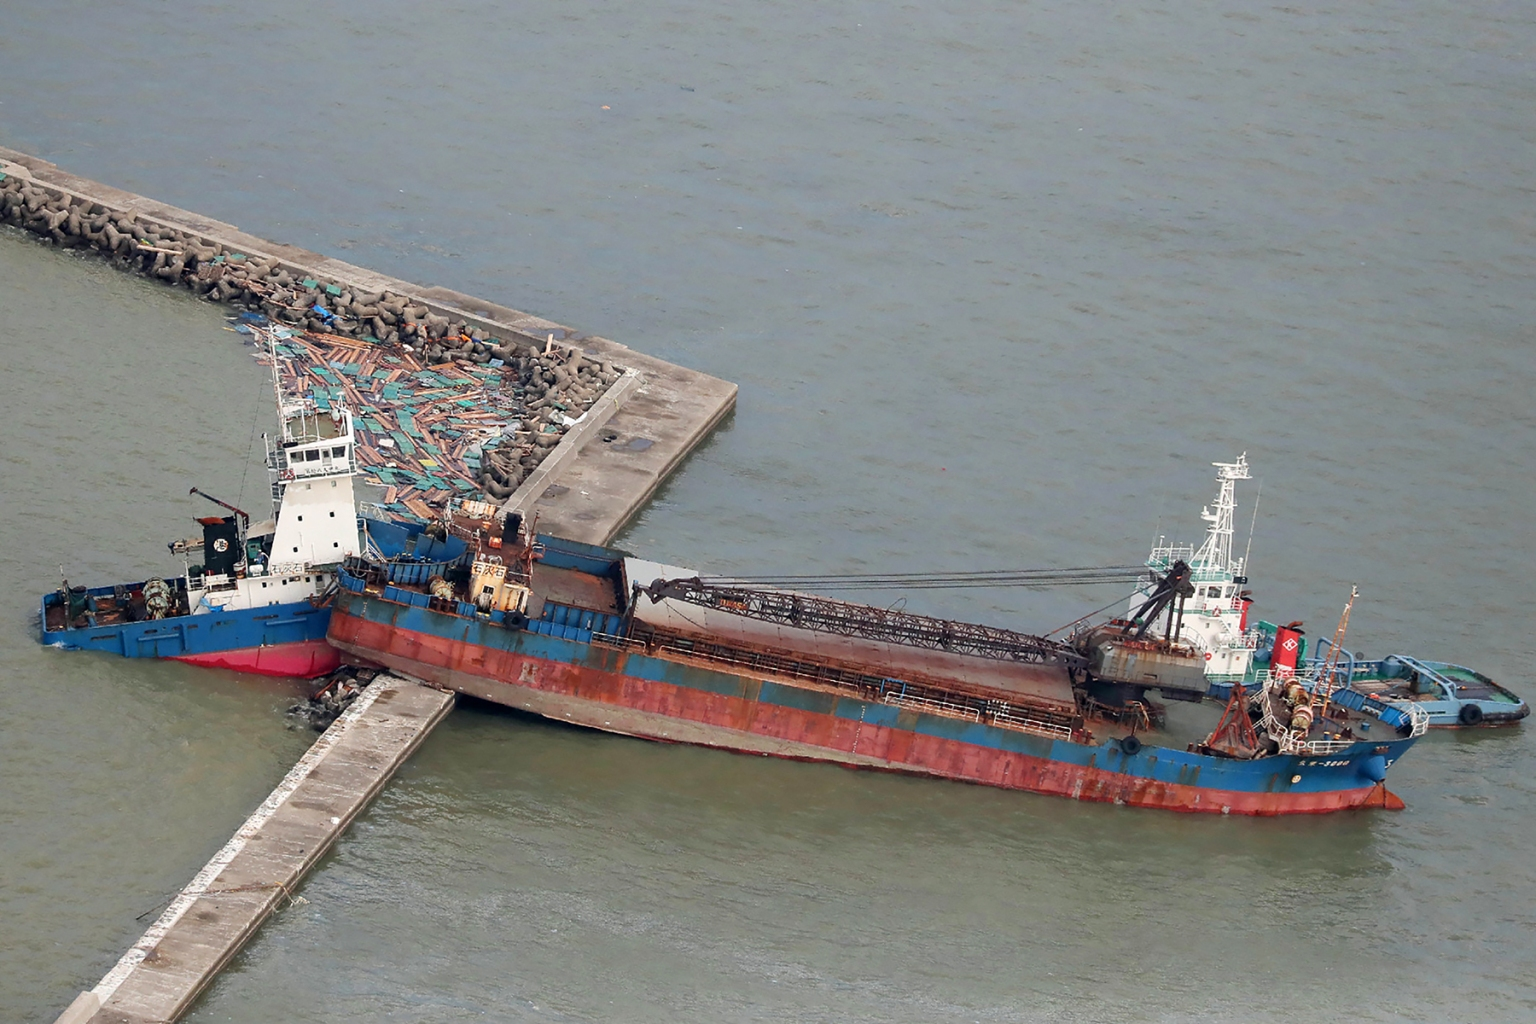 A ship breaks apart after crashing into a breakwater during strong winds from typhoon Jebi in Nishinomiya city, Hyogo prefecture, Japan, on Sept. 5. JIJI PRESS/AFP/Getty Images